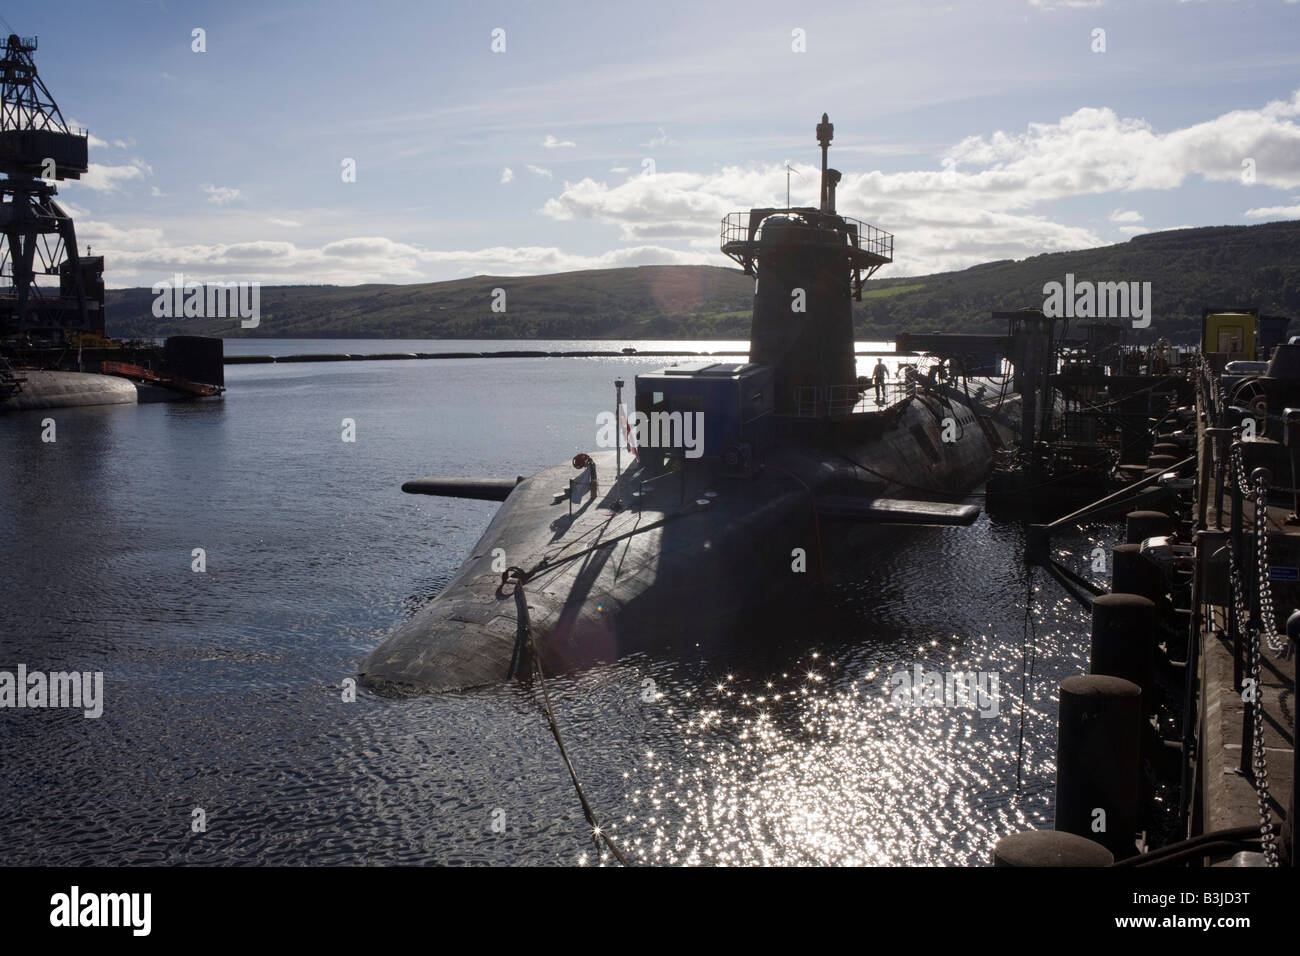 HMS Vigilant, a 15,000 ton British Vanguard class nuclear submarine docked at HM Naval Base Clyde, Faslane, Scotland - Stock Image